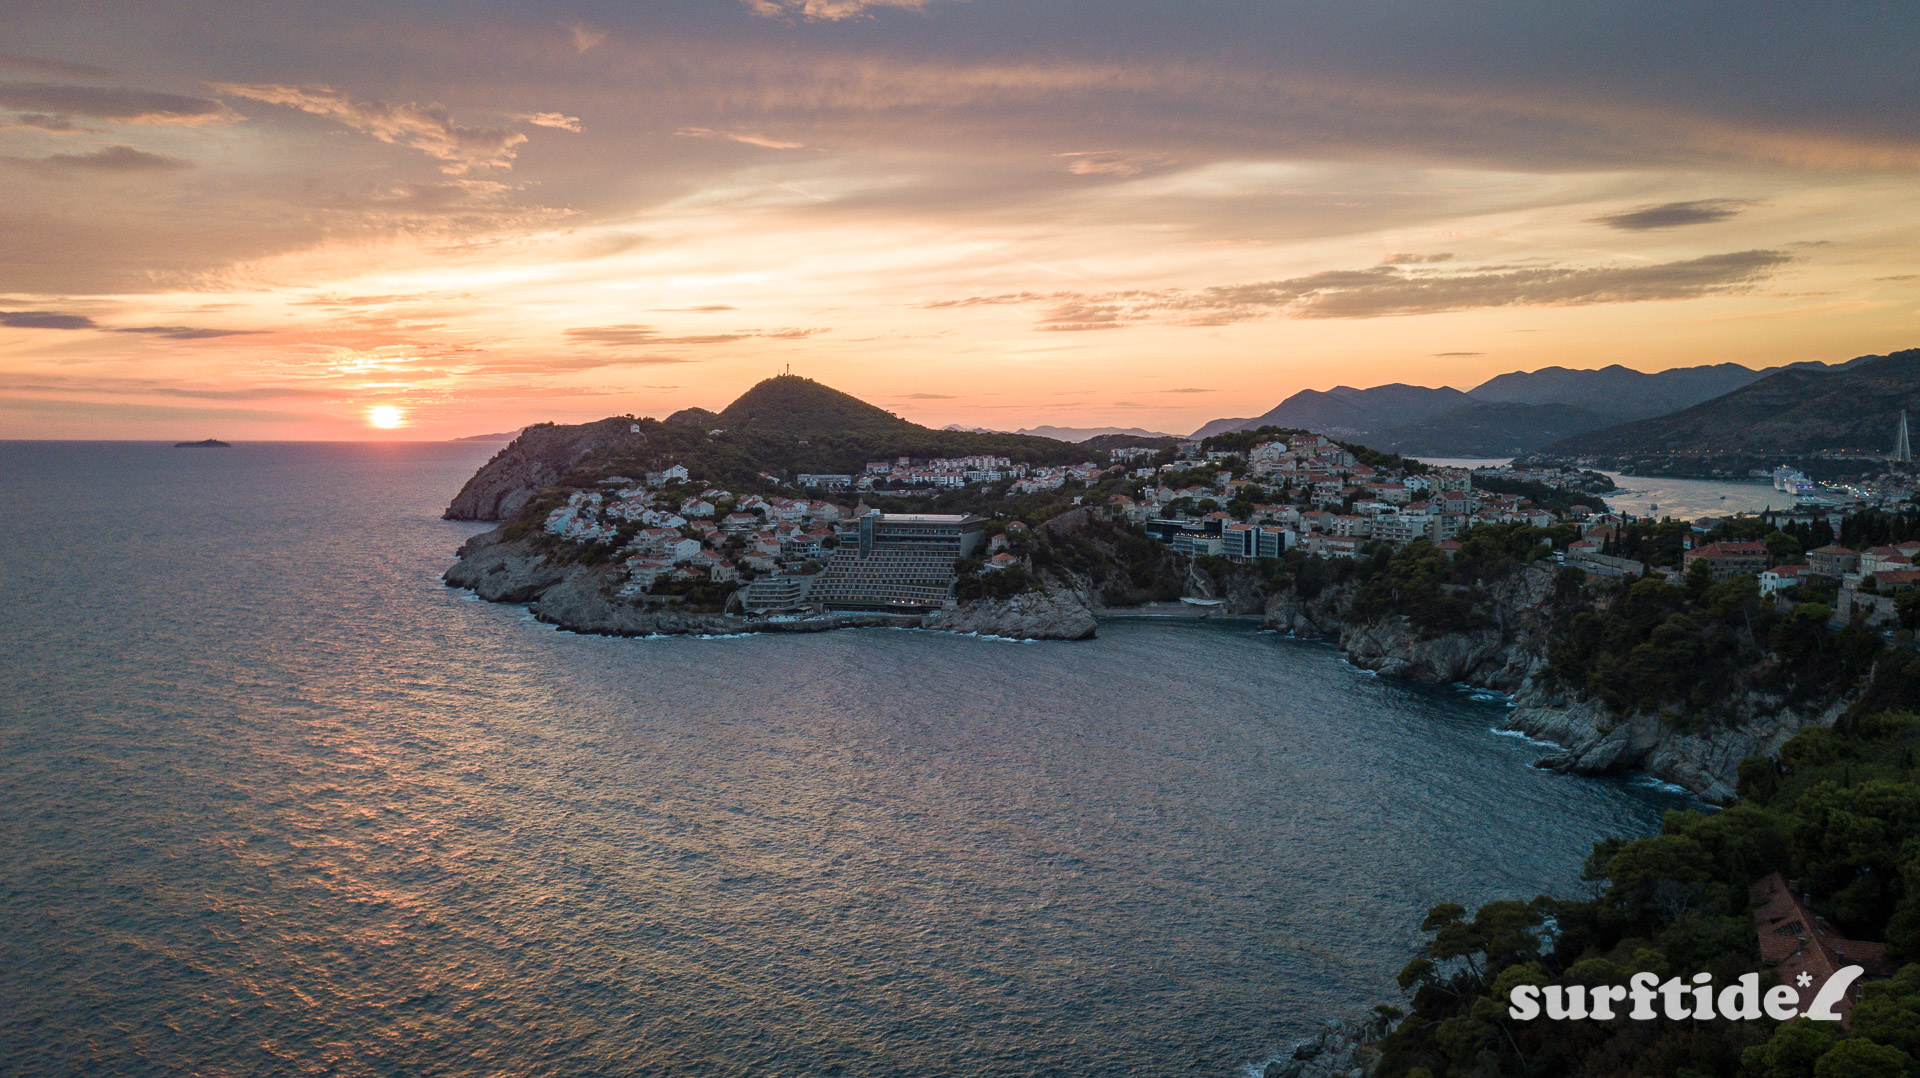 Aerial photo showing sunset over the city of Dubrovnik